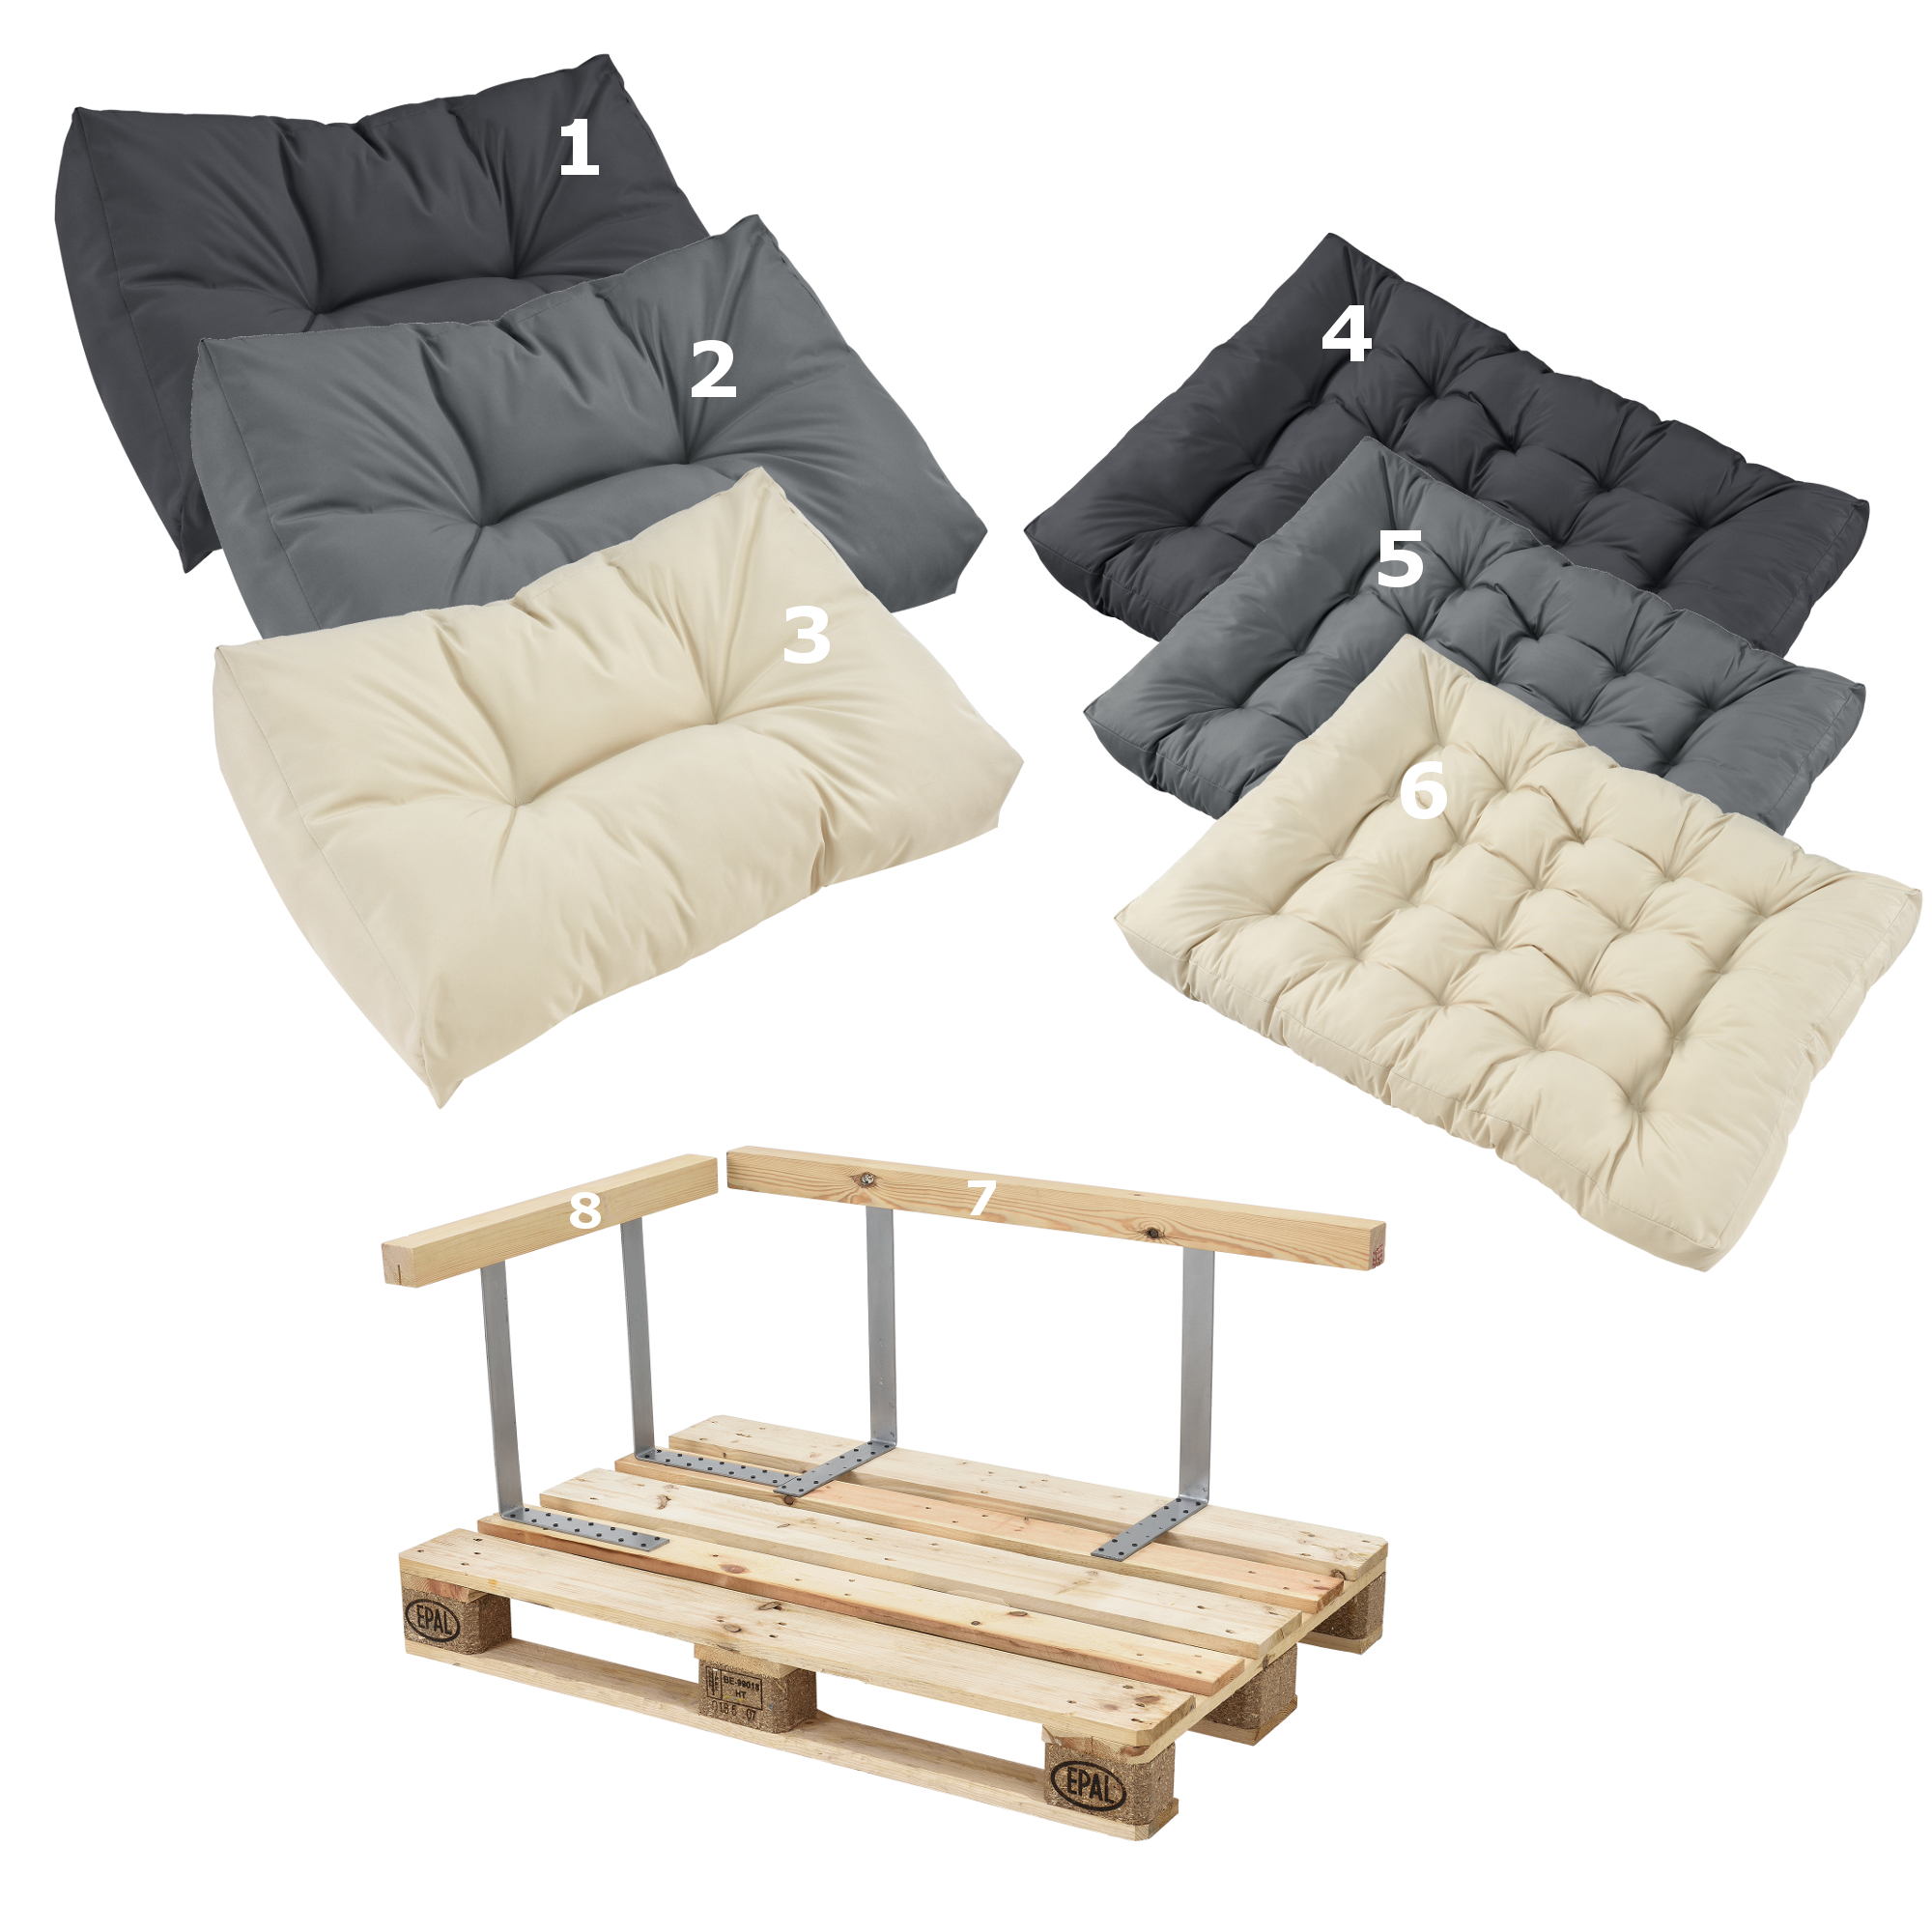 pallet sofa for sale room and board leather bed en casa cushions in outdoor pallets cushion